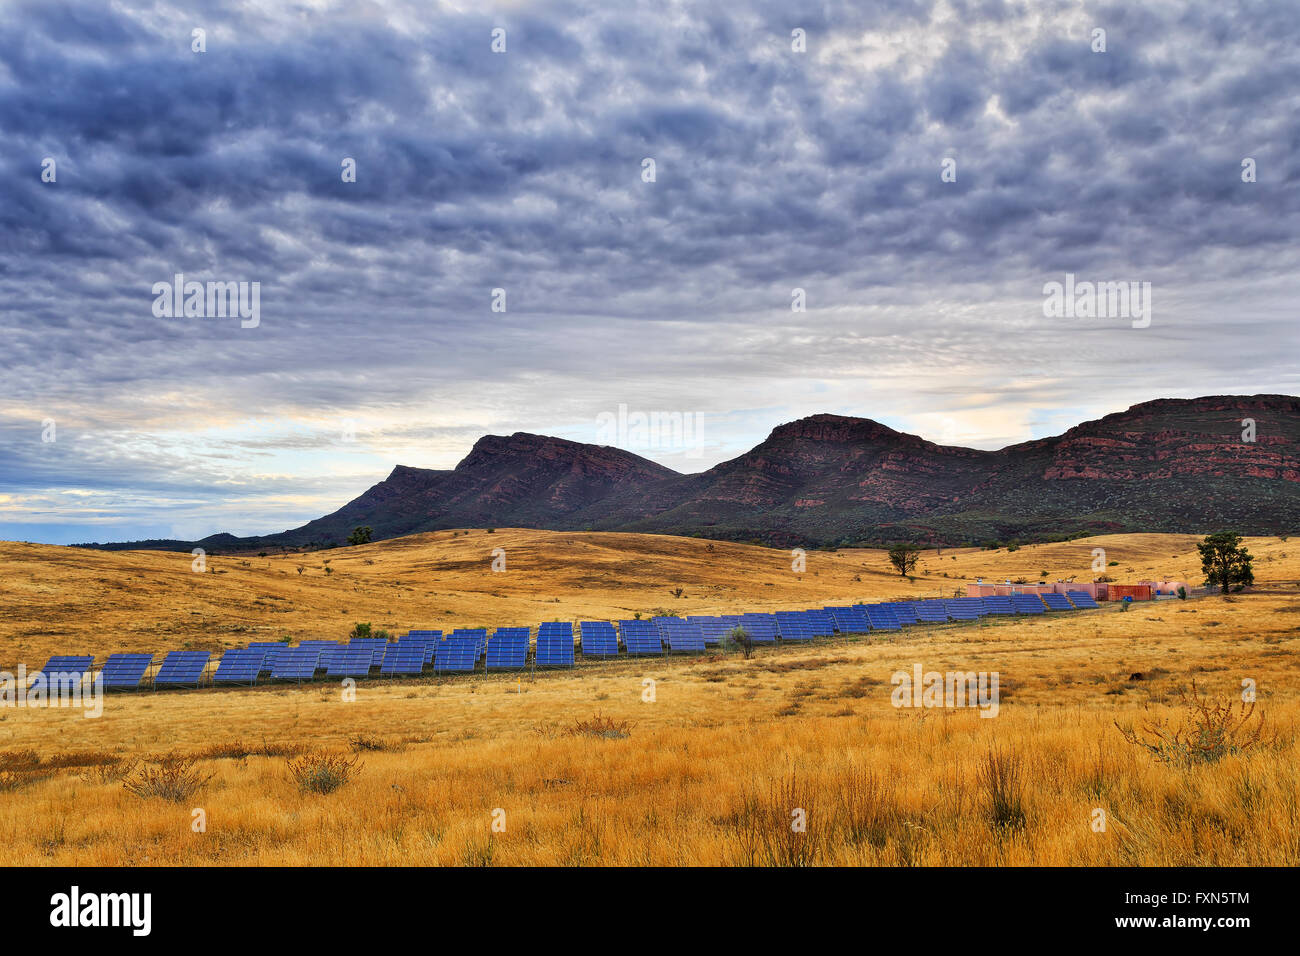 Array of on ground solar panels supplying electricity to Wilpena Pound in a middle of Flinders Ranges national park - Stock Image